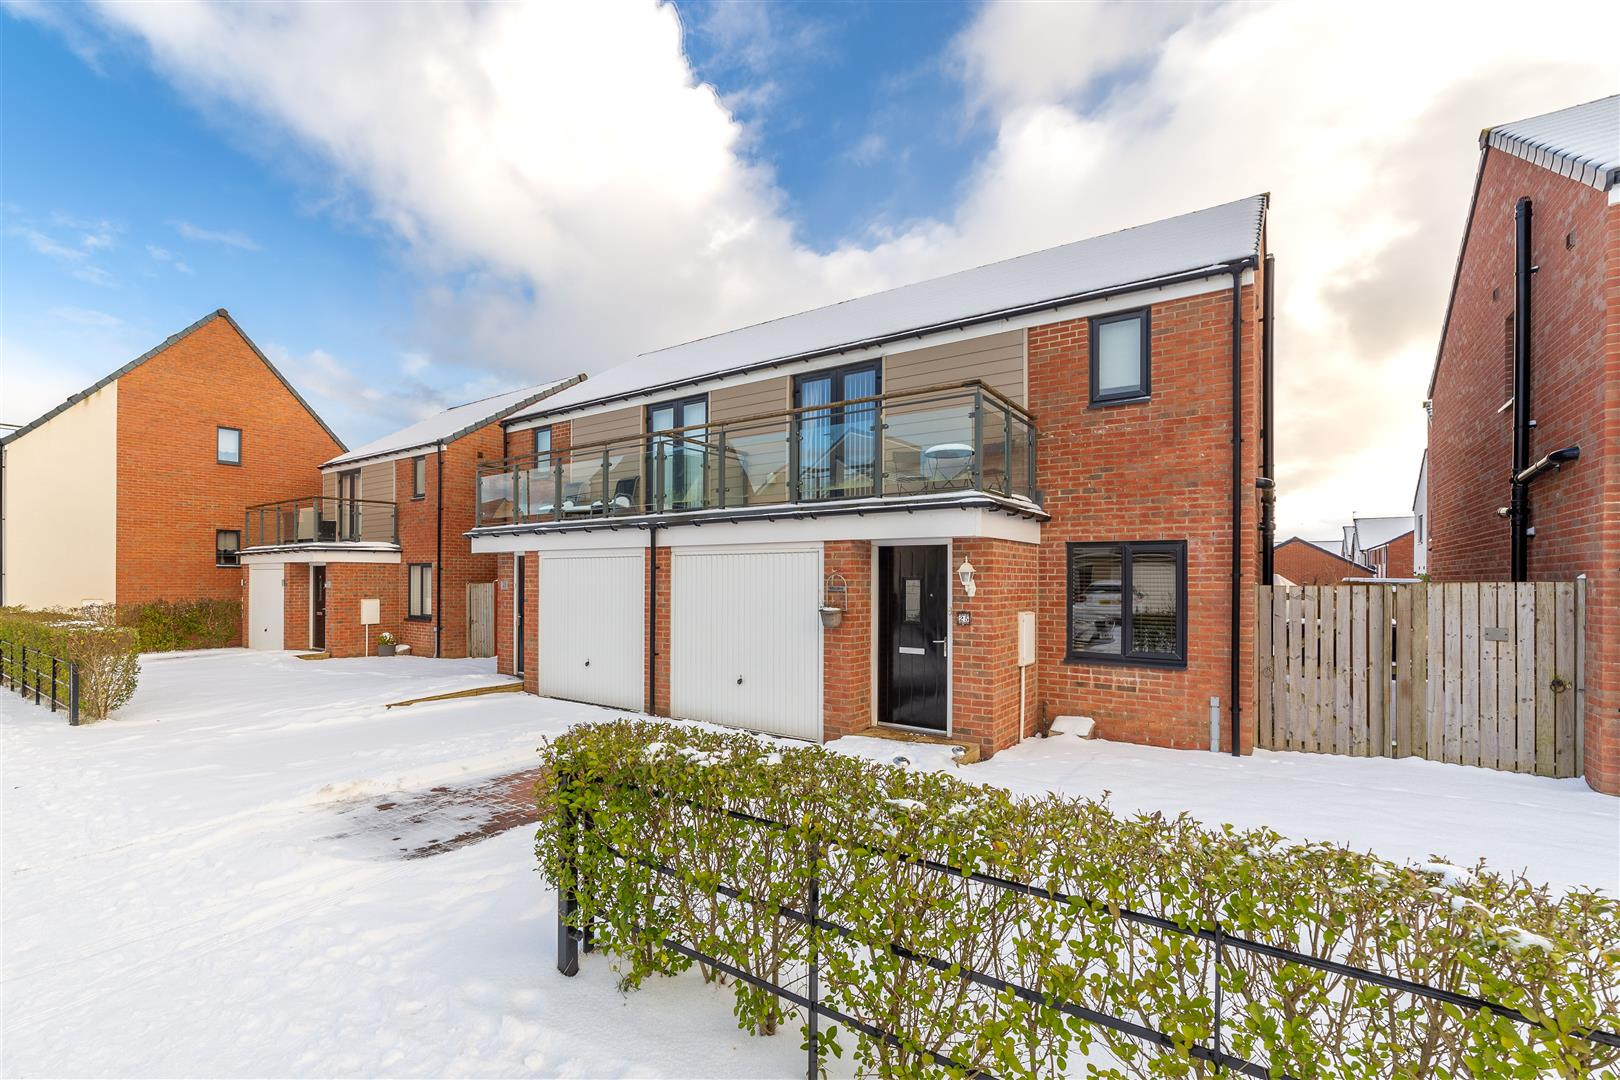 3 bed semi-detached house for sale in Great Park, NE13 9GA, NE13